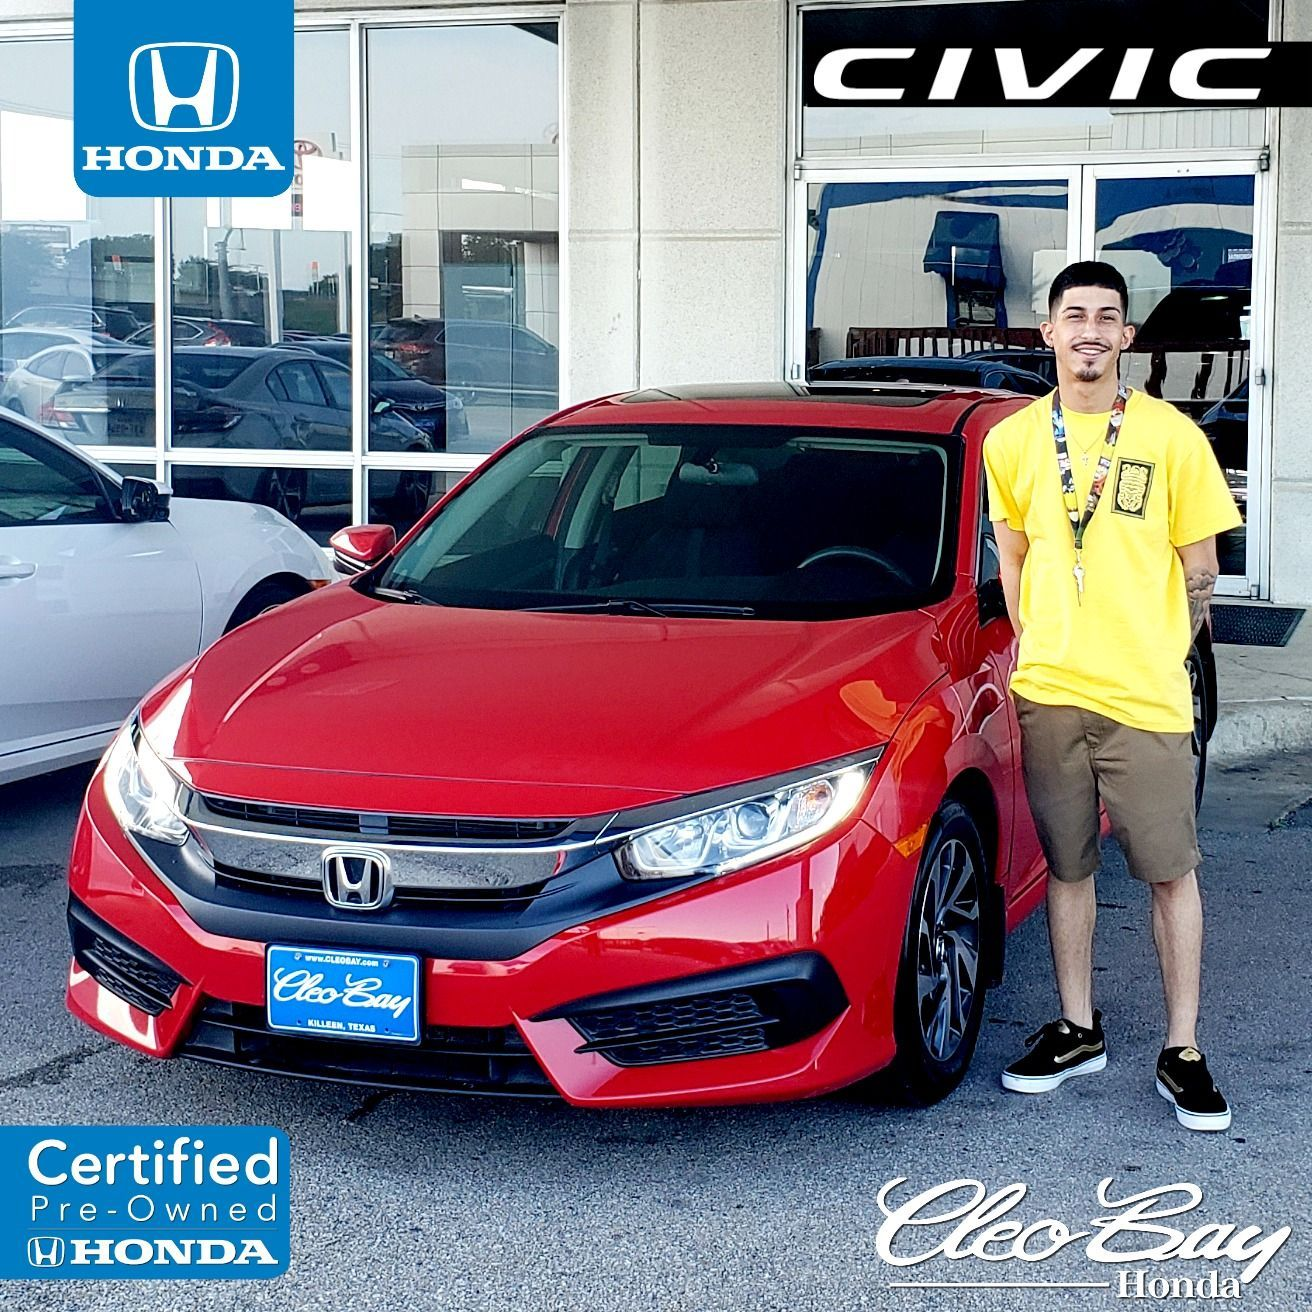 Congratulations Lee on your recent purchase of a Certified